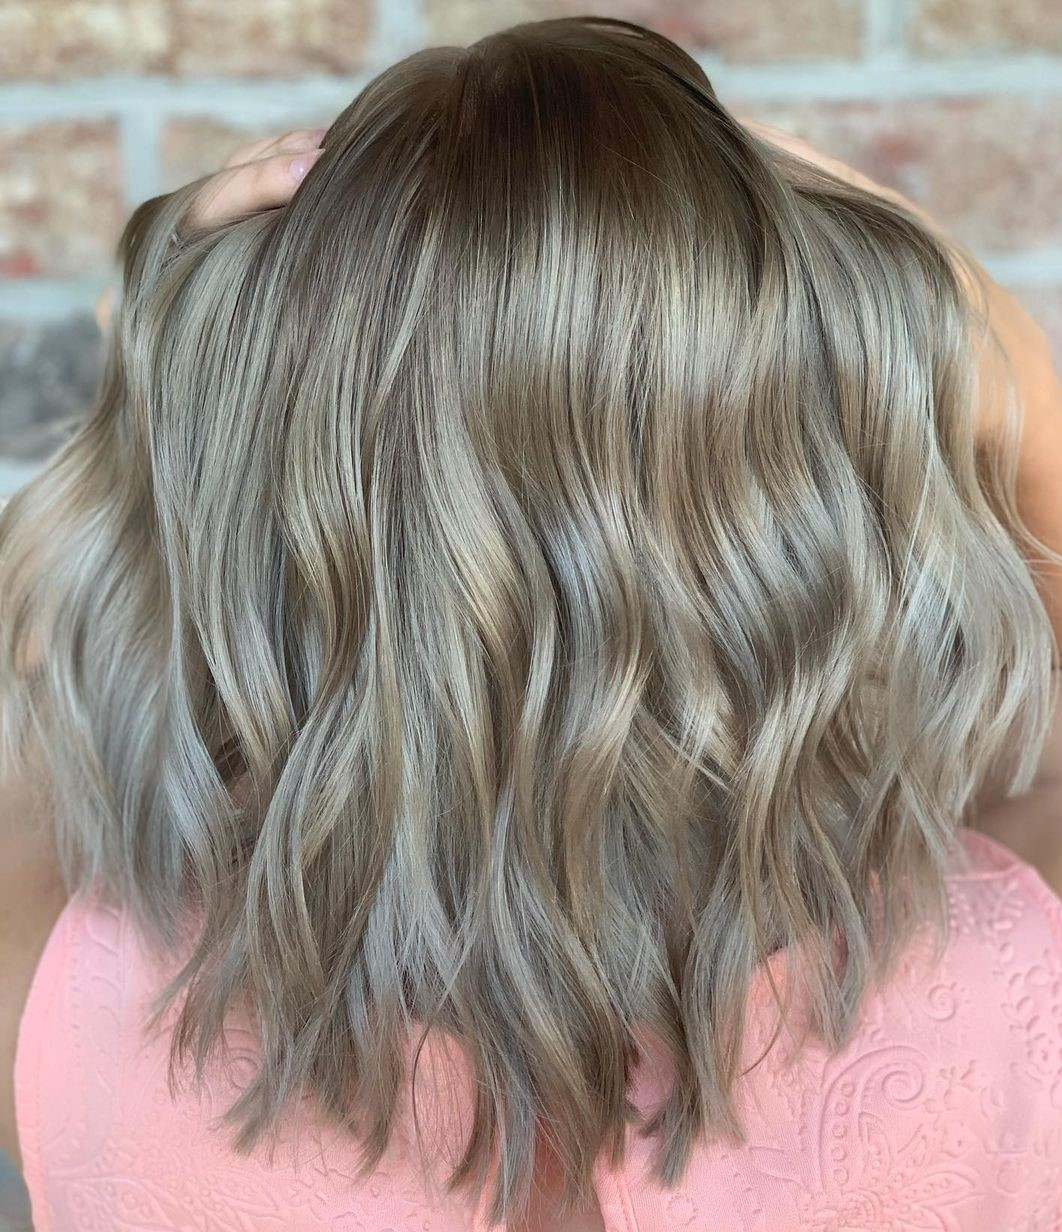 Warm Blonde and Gray Highlights